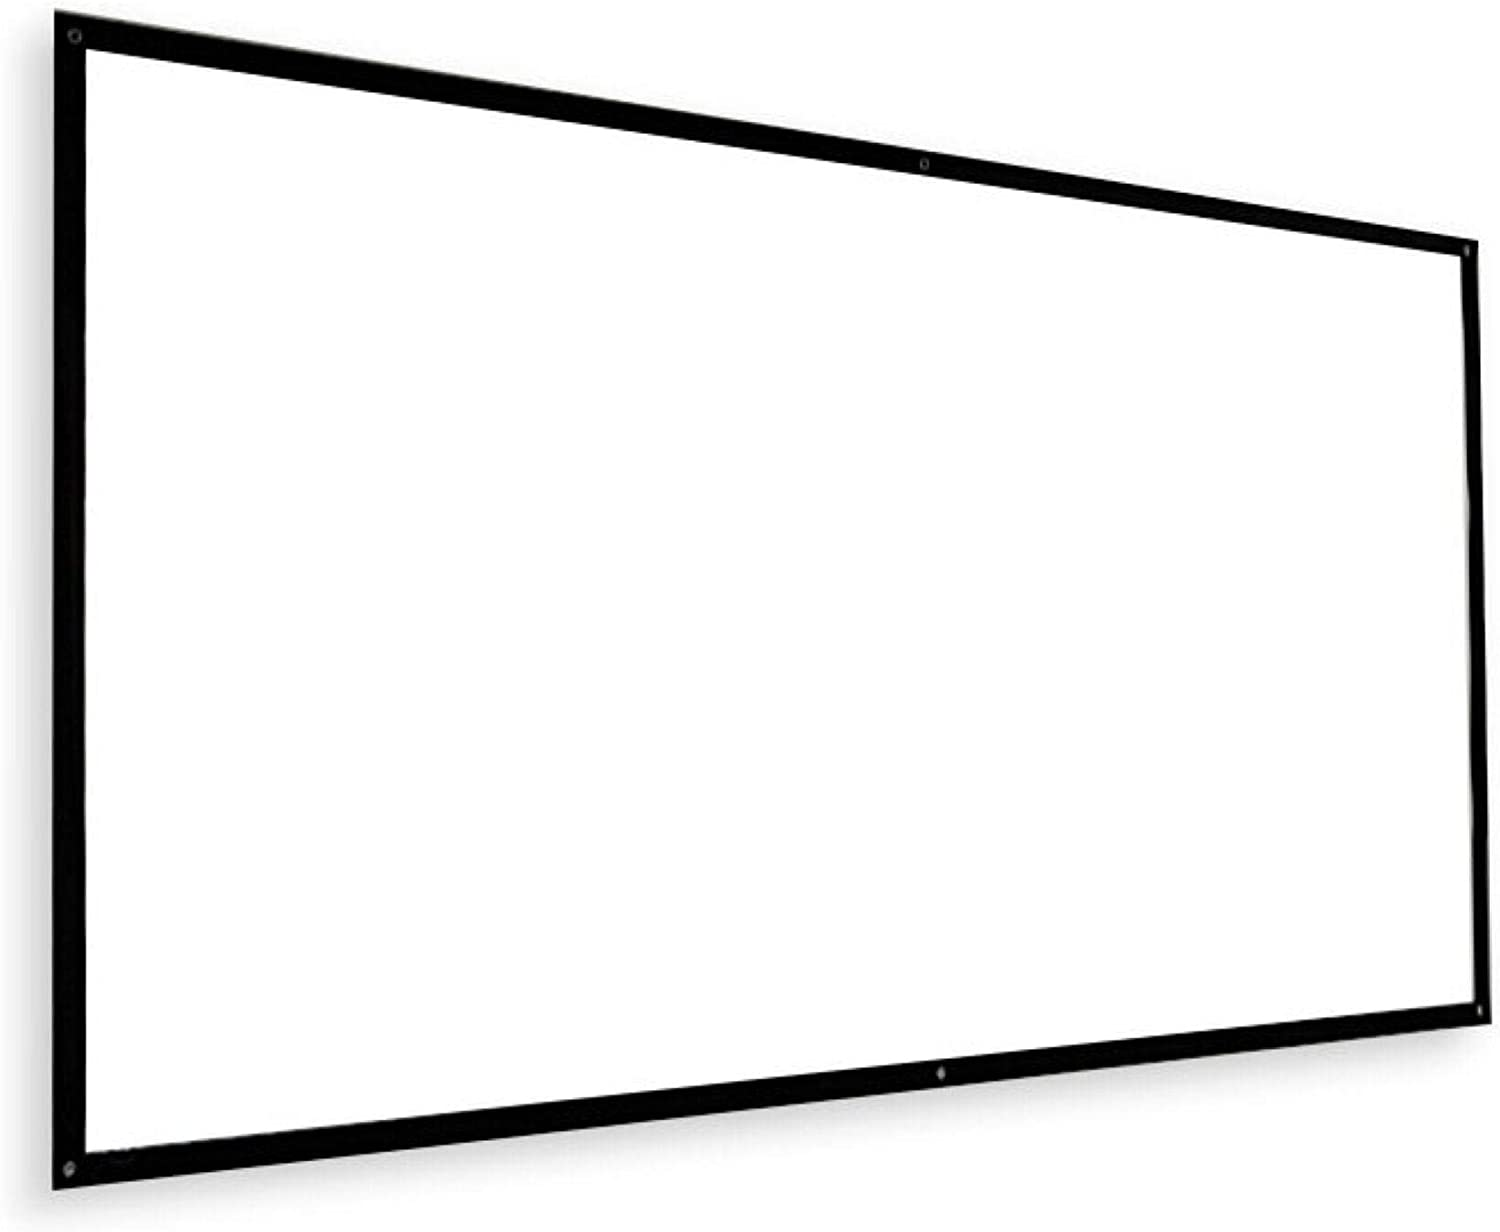 FMOGE Projection Screen 120-Inch Portable Projector Screen White Plastic Simple Curtain HD for Home Cinema and Outdoor